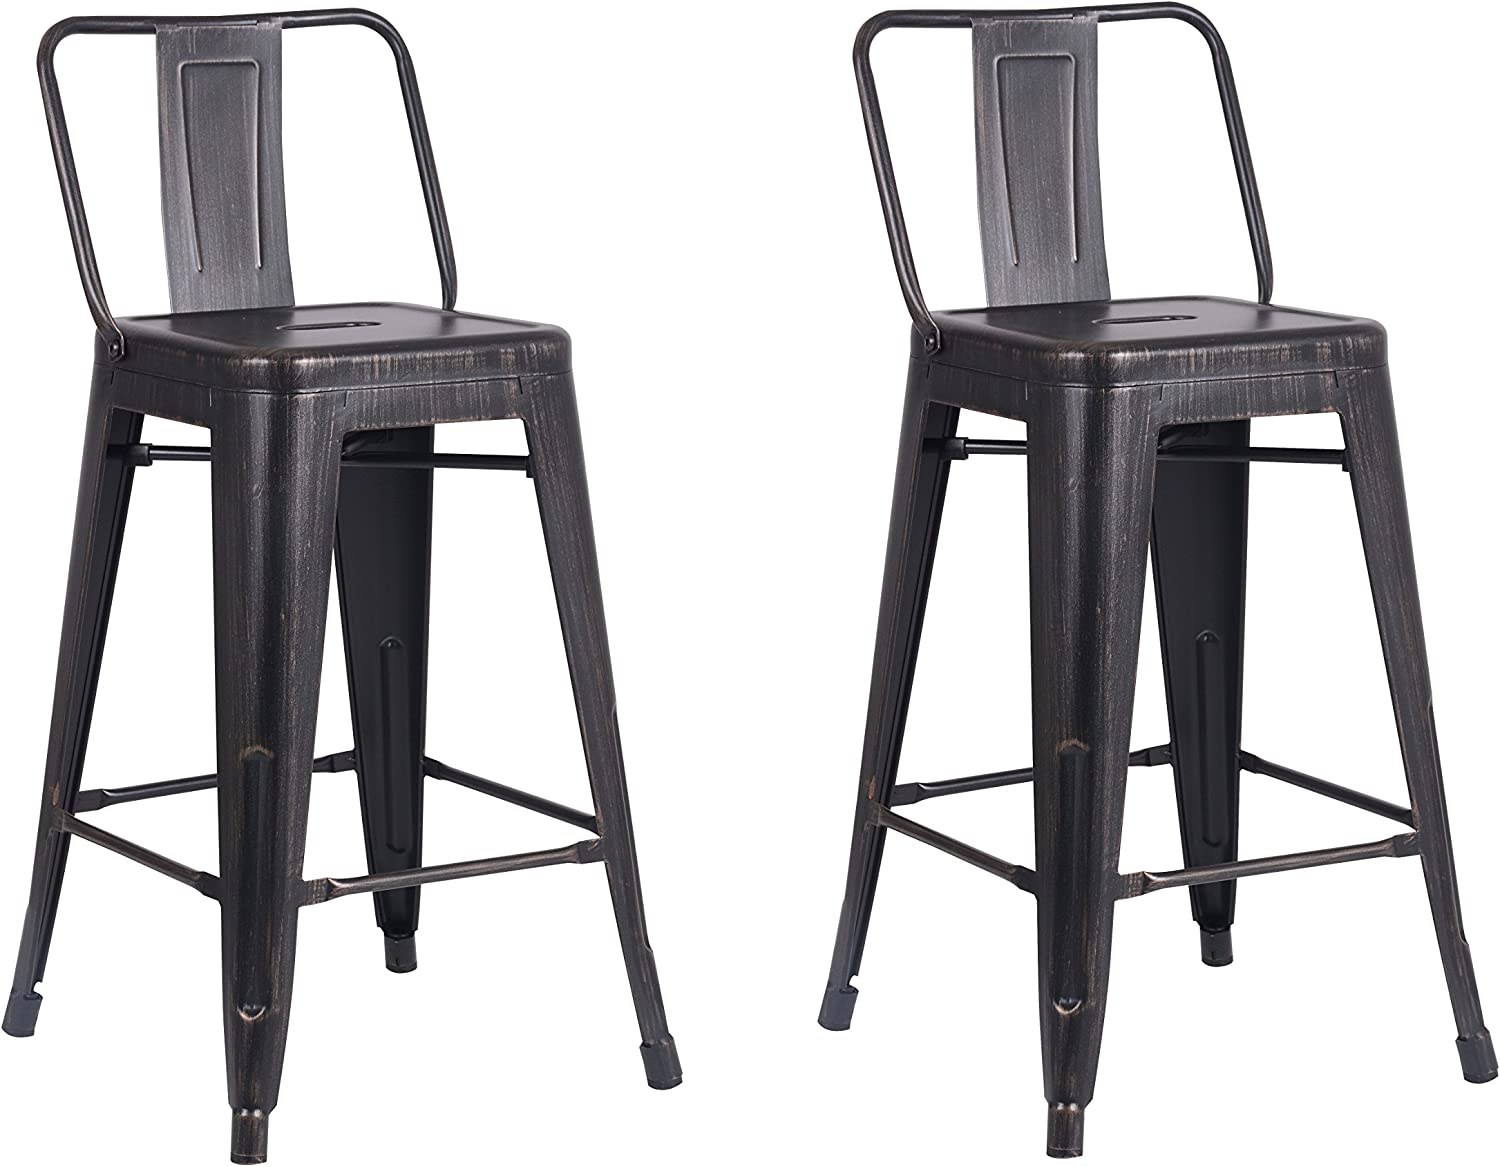 Christies Home Living Modern Light Weight Industrial Contemporary Rustic Vintage Costal Metal Barstools with Bucket Back and 4 Leg Design, (Set of 2) (24